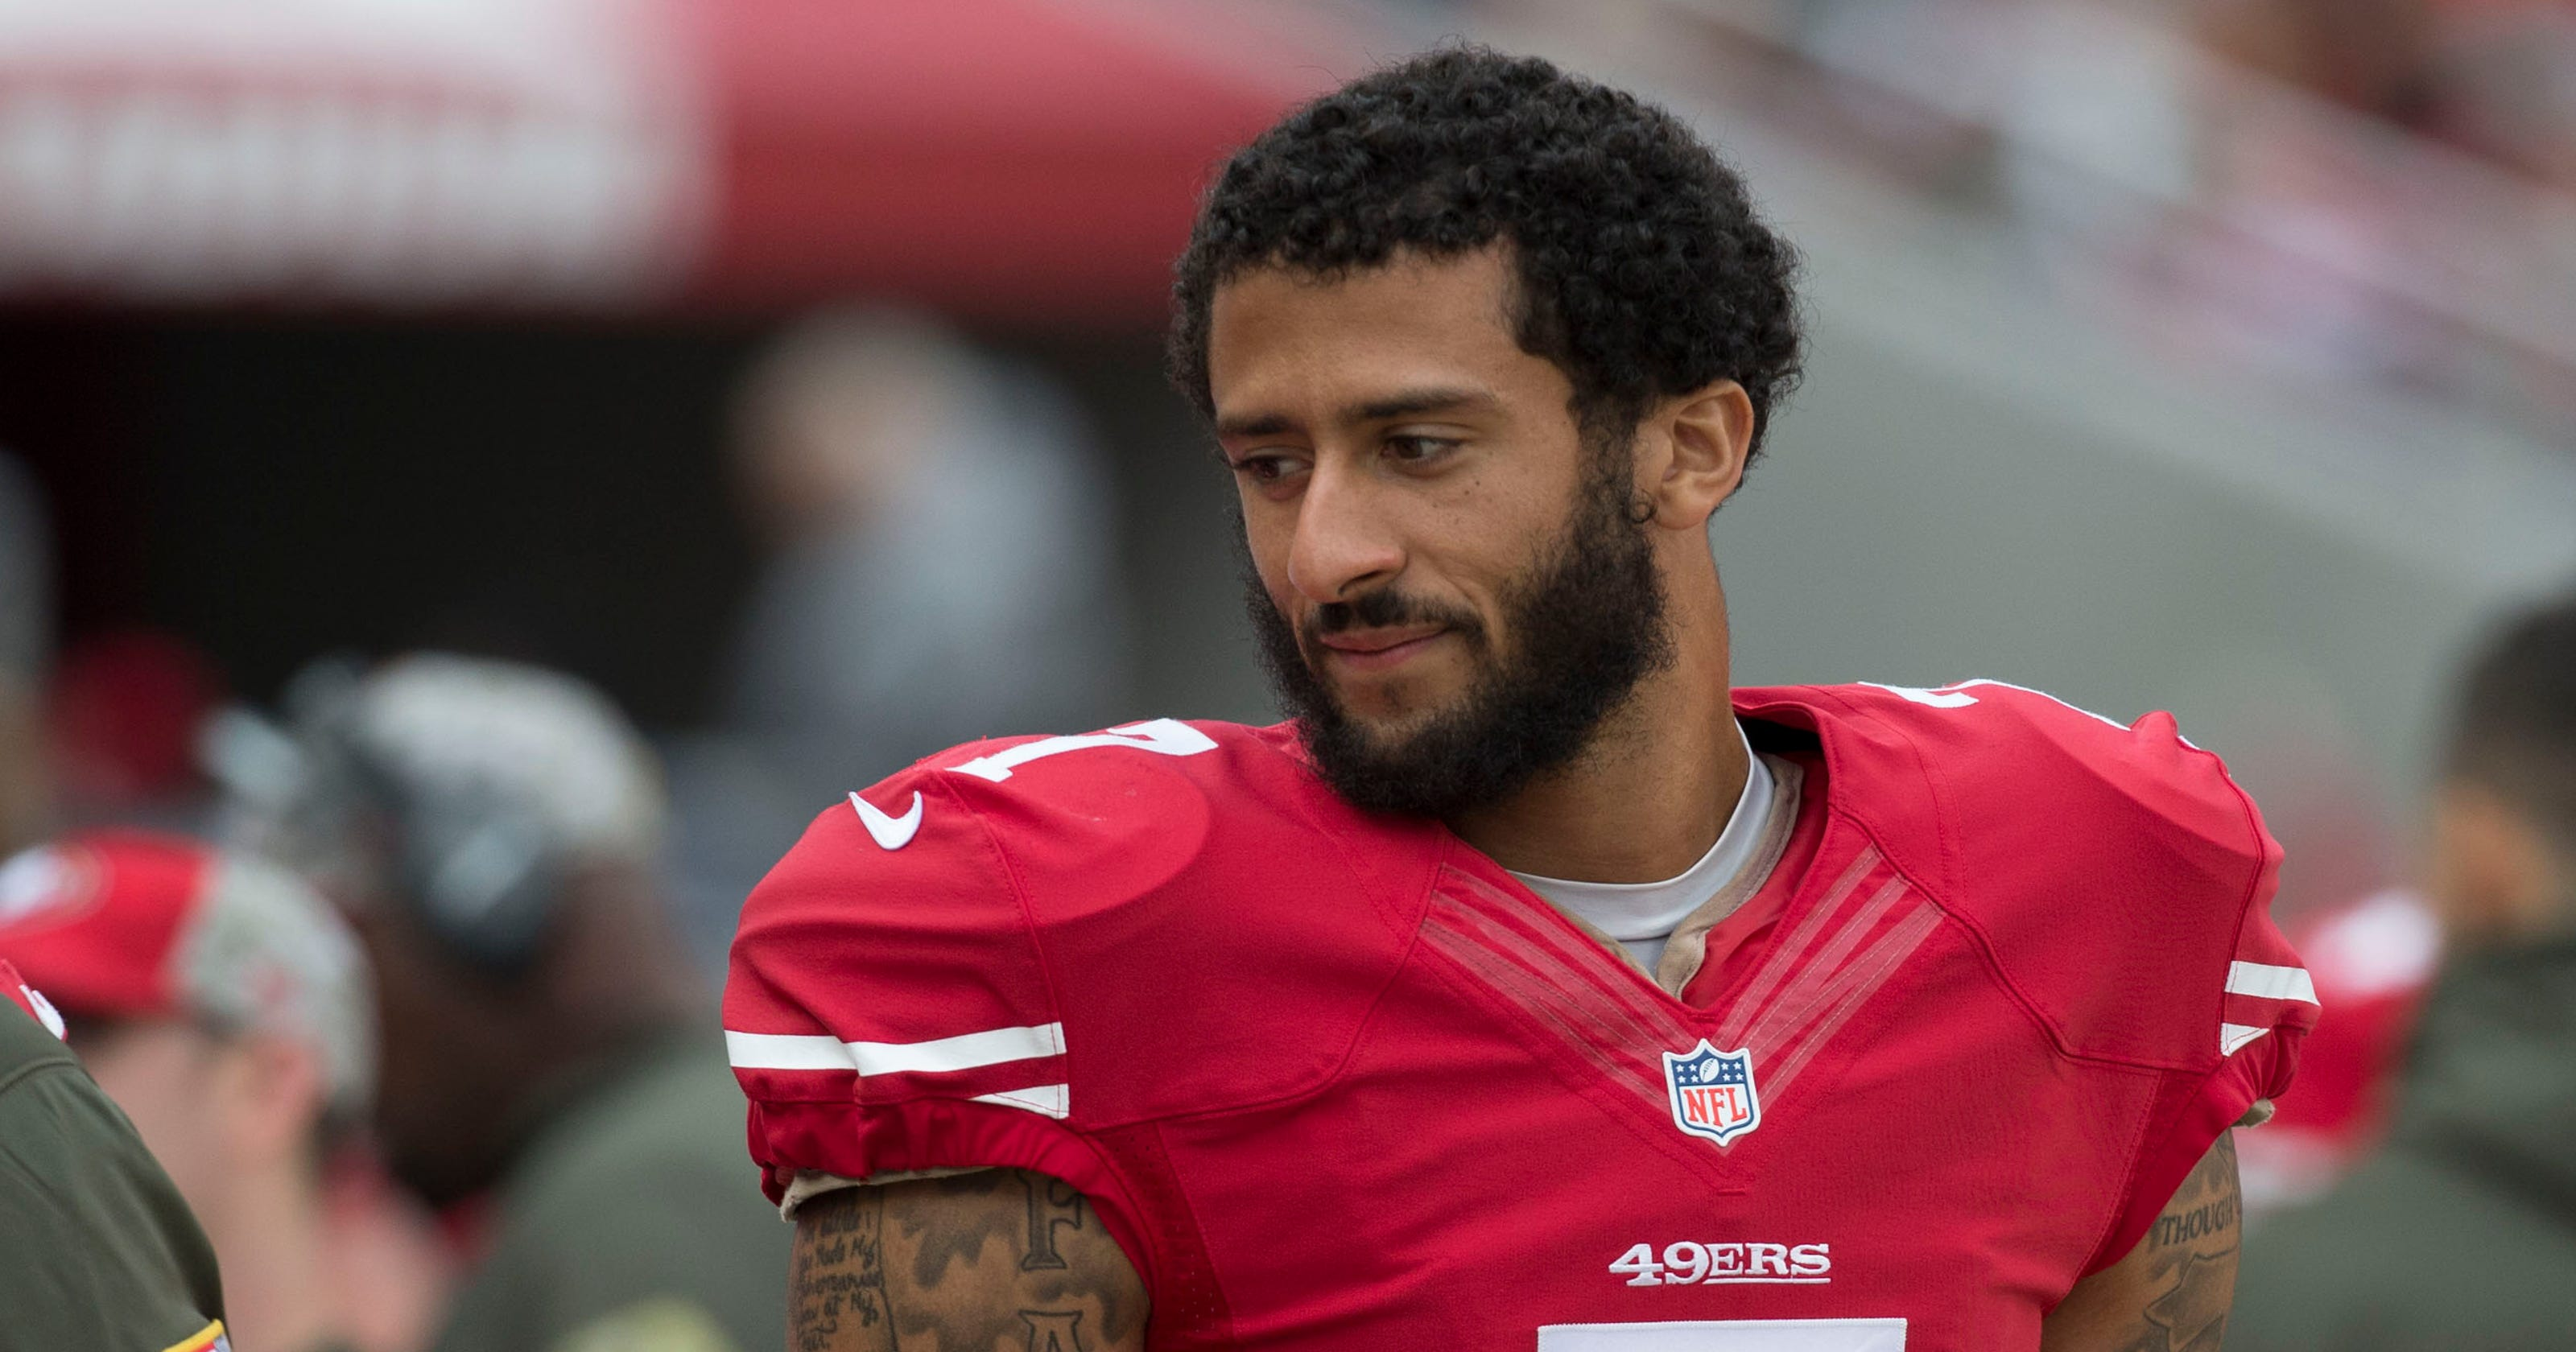 b4d6be9975c Will 49ers QB Colin Kaepernick s protest of national anthem wind up  mattering